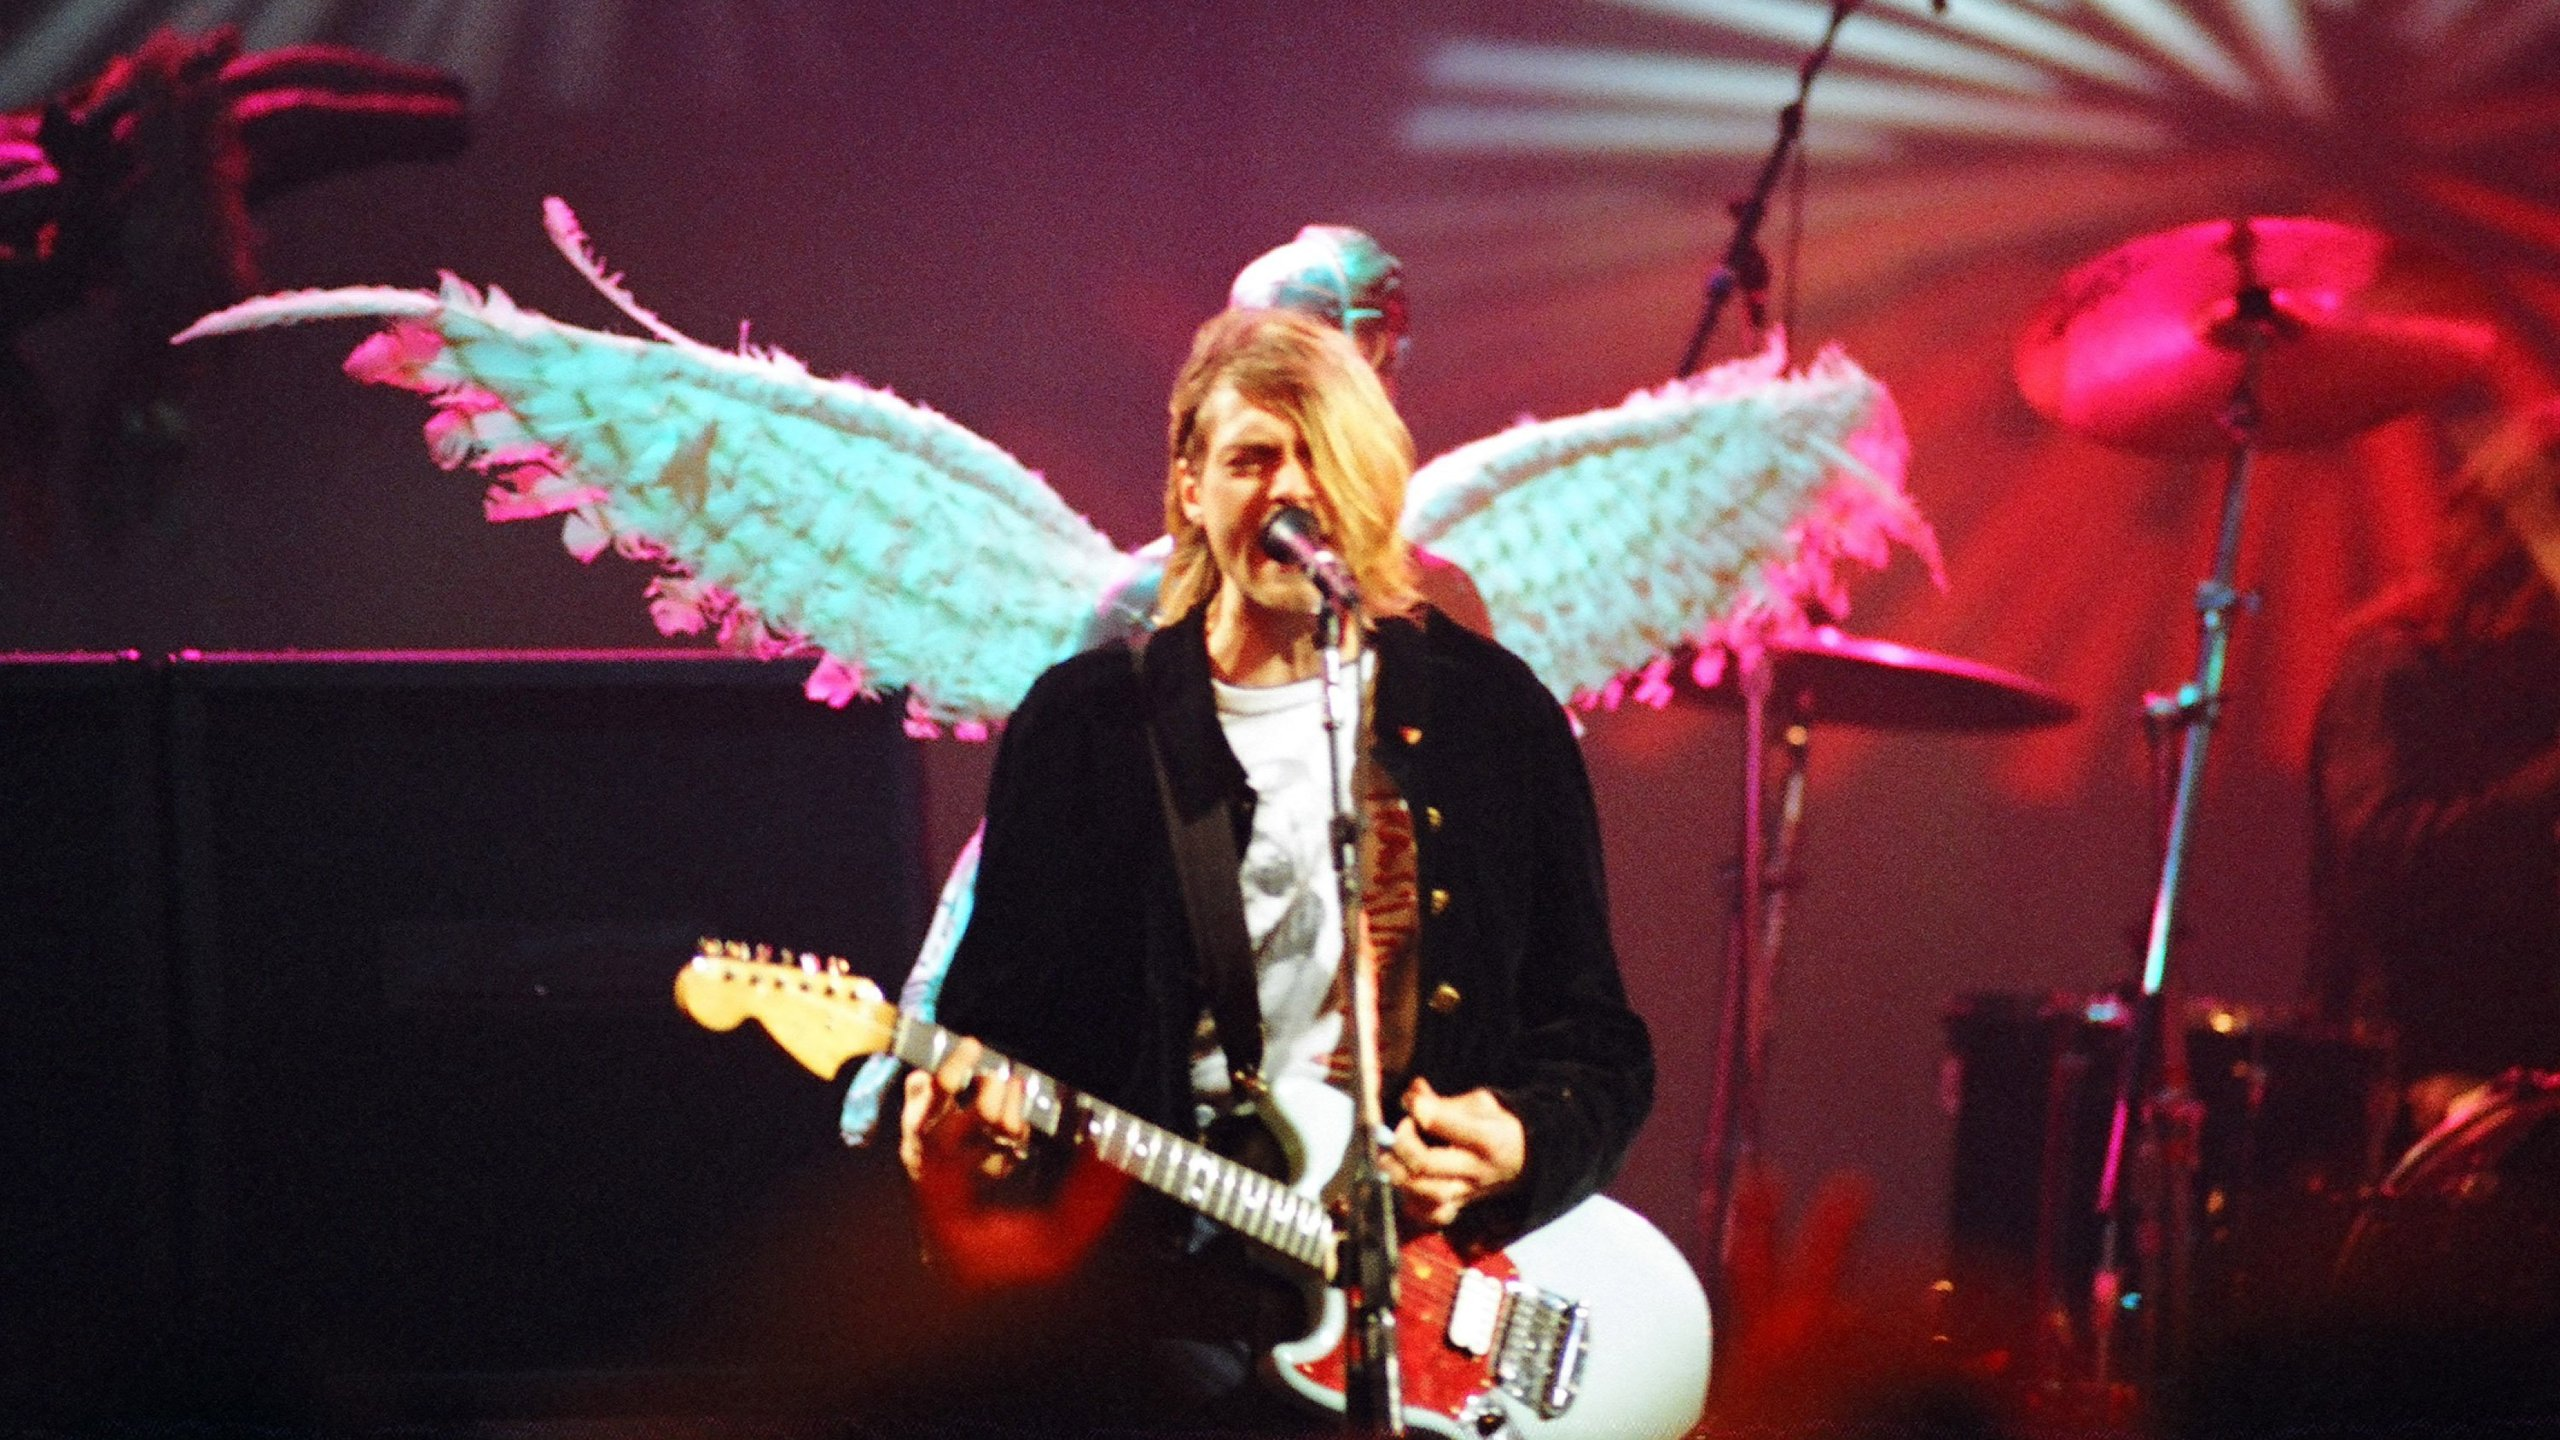 """A quarter century after his death, Cobain's career continues to fascinate and inspire. Rolling Stone named he and Nirvana 30th on its list of the """"100 Greatest Artists of All Time."""" (Credit: Jeff Kravitz/FilmMagic Inc/Getty Images)"""